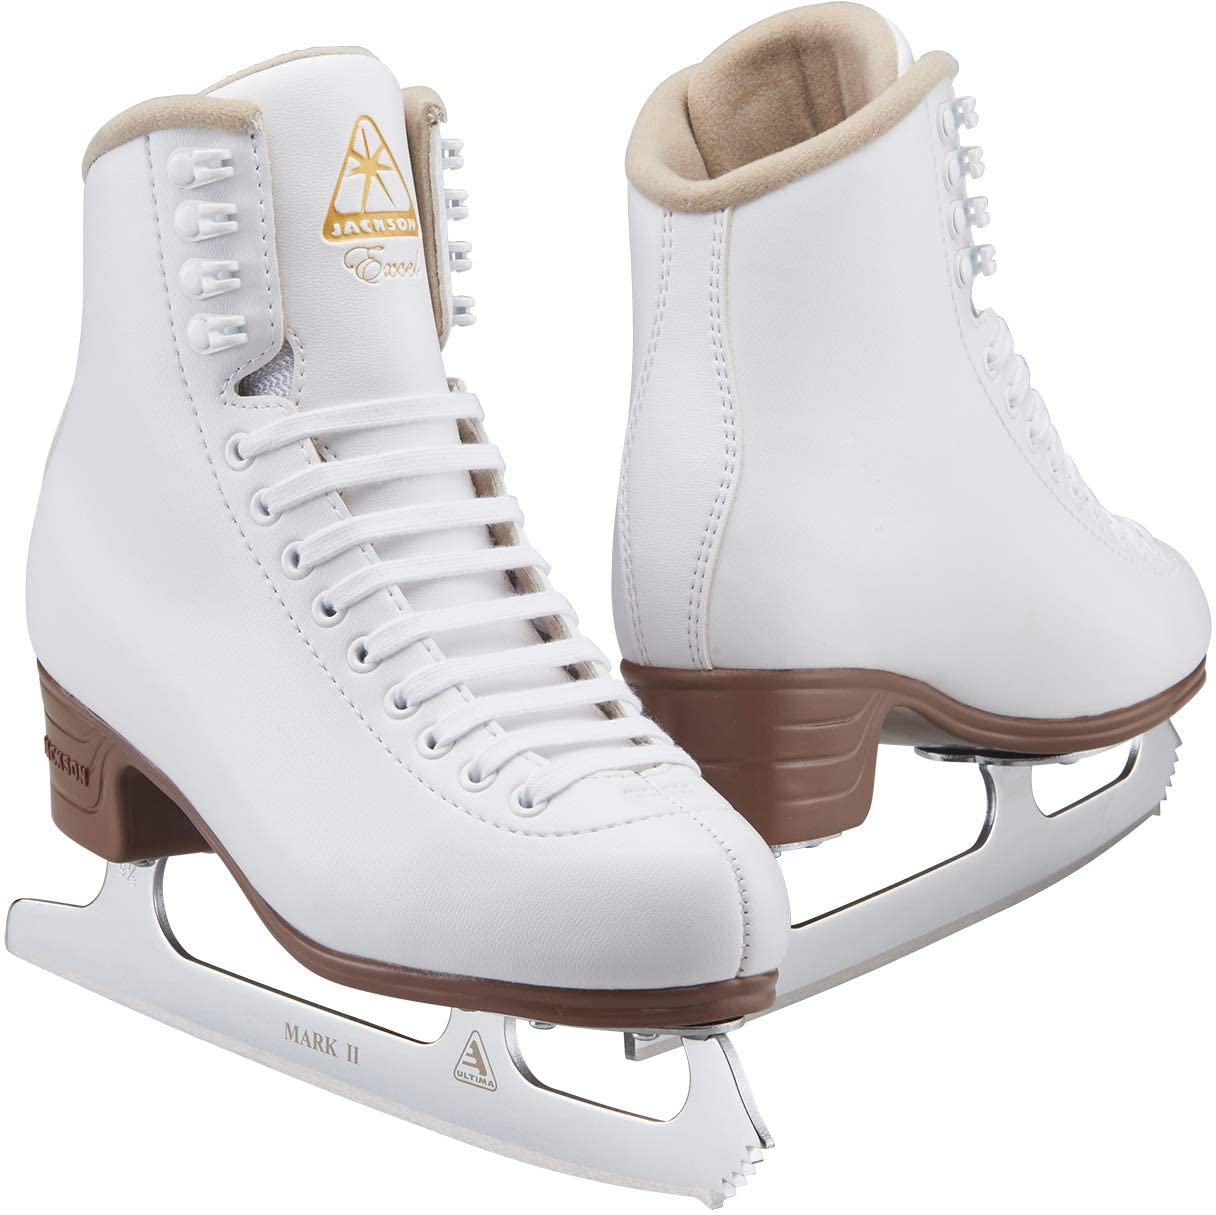 Jackson Ultima Excel White Figure Ice Skates for Women and Girls – Improved, JUST LAUNCHED 2019